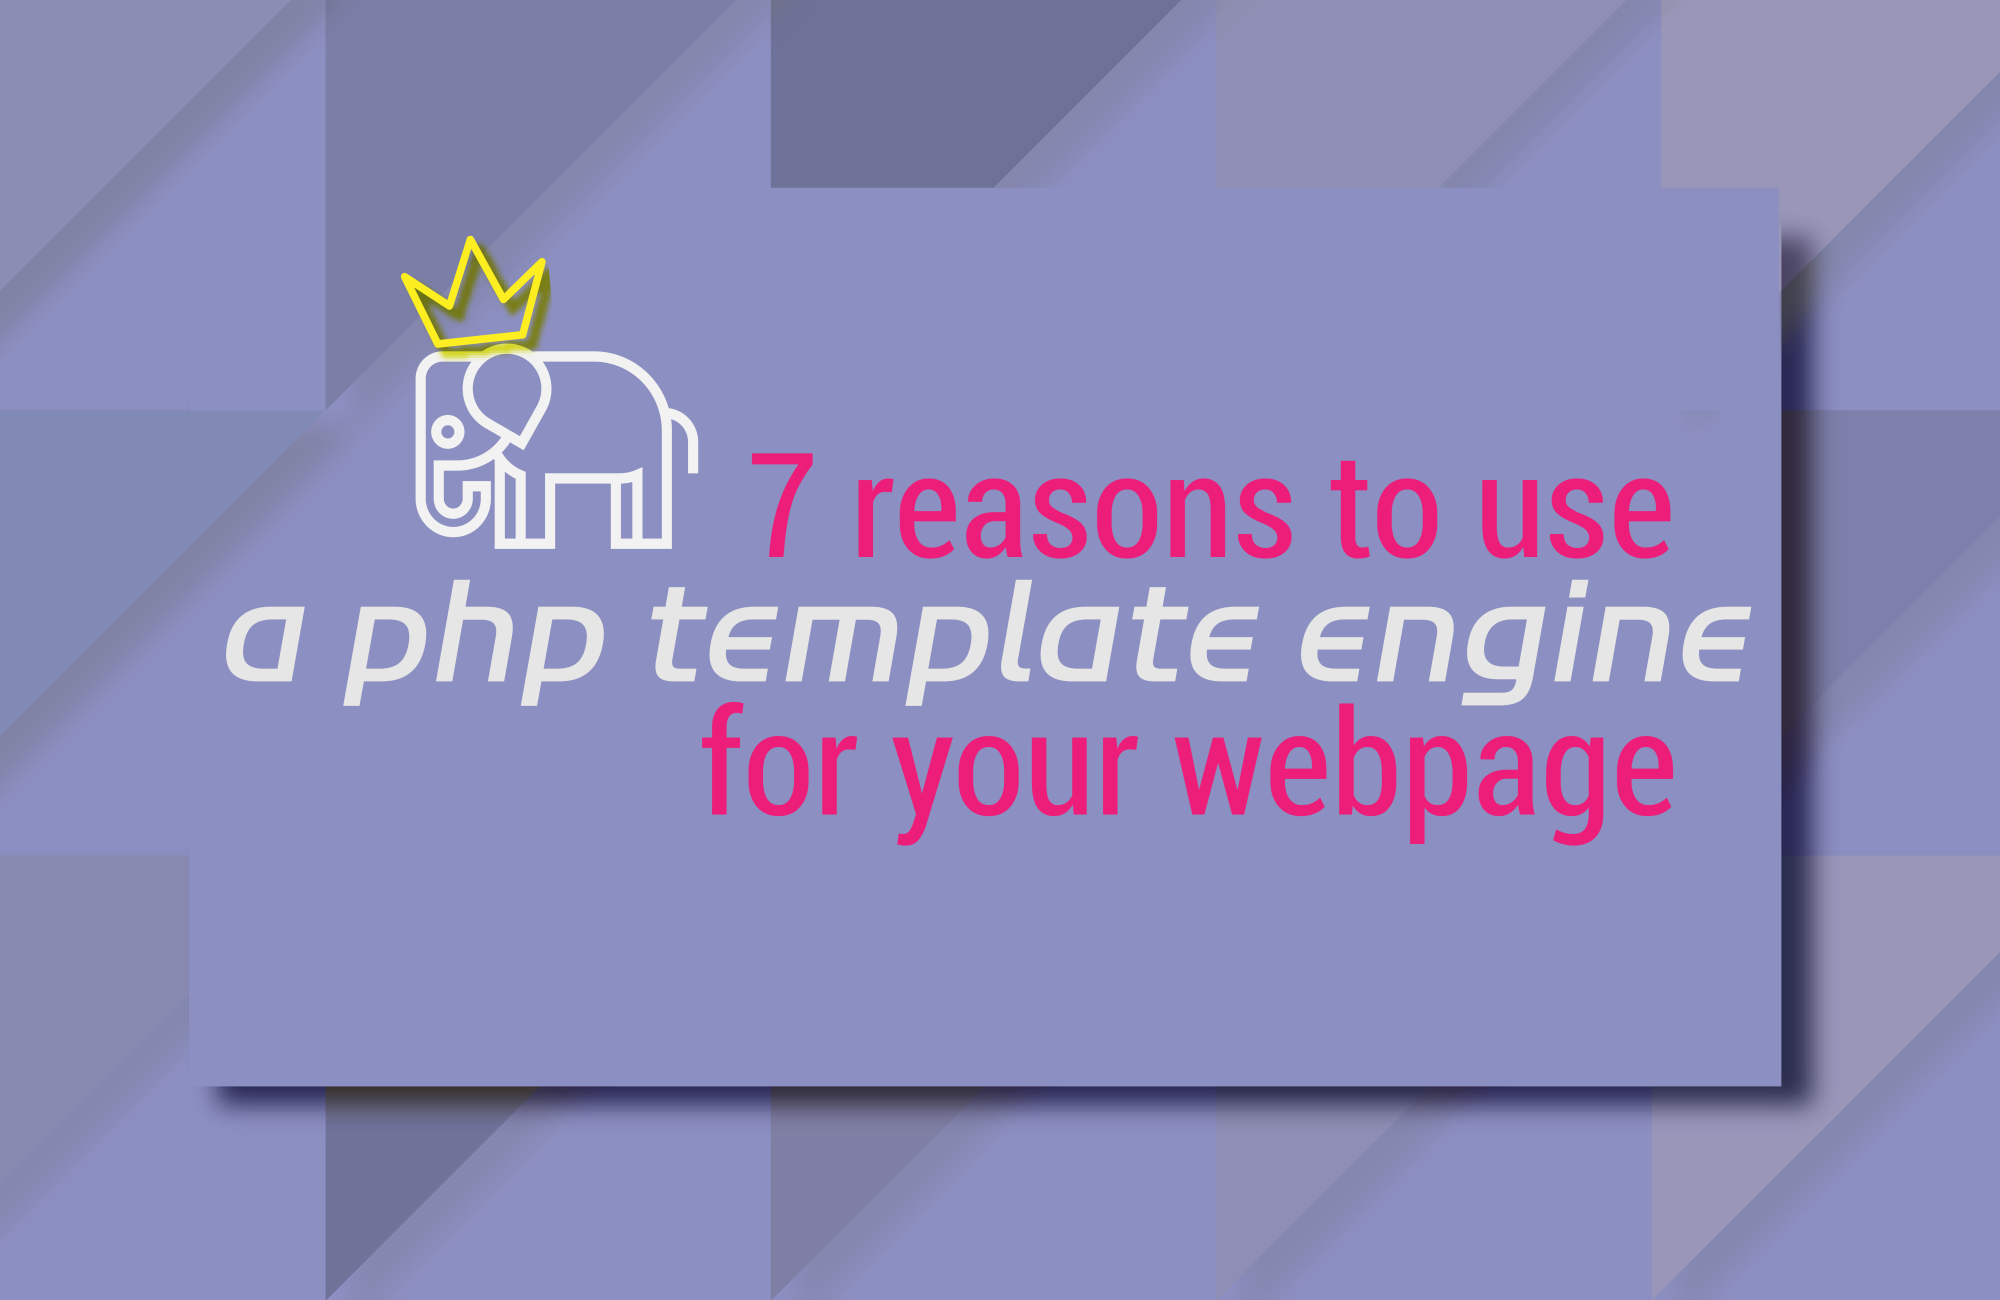 7 Reasons To Use A Php Template Engine For Your Webpage